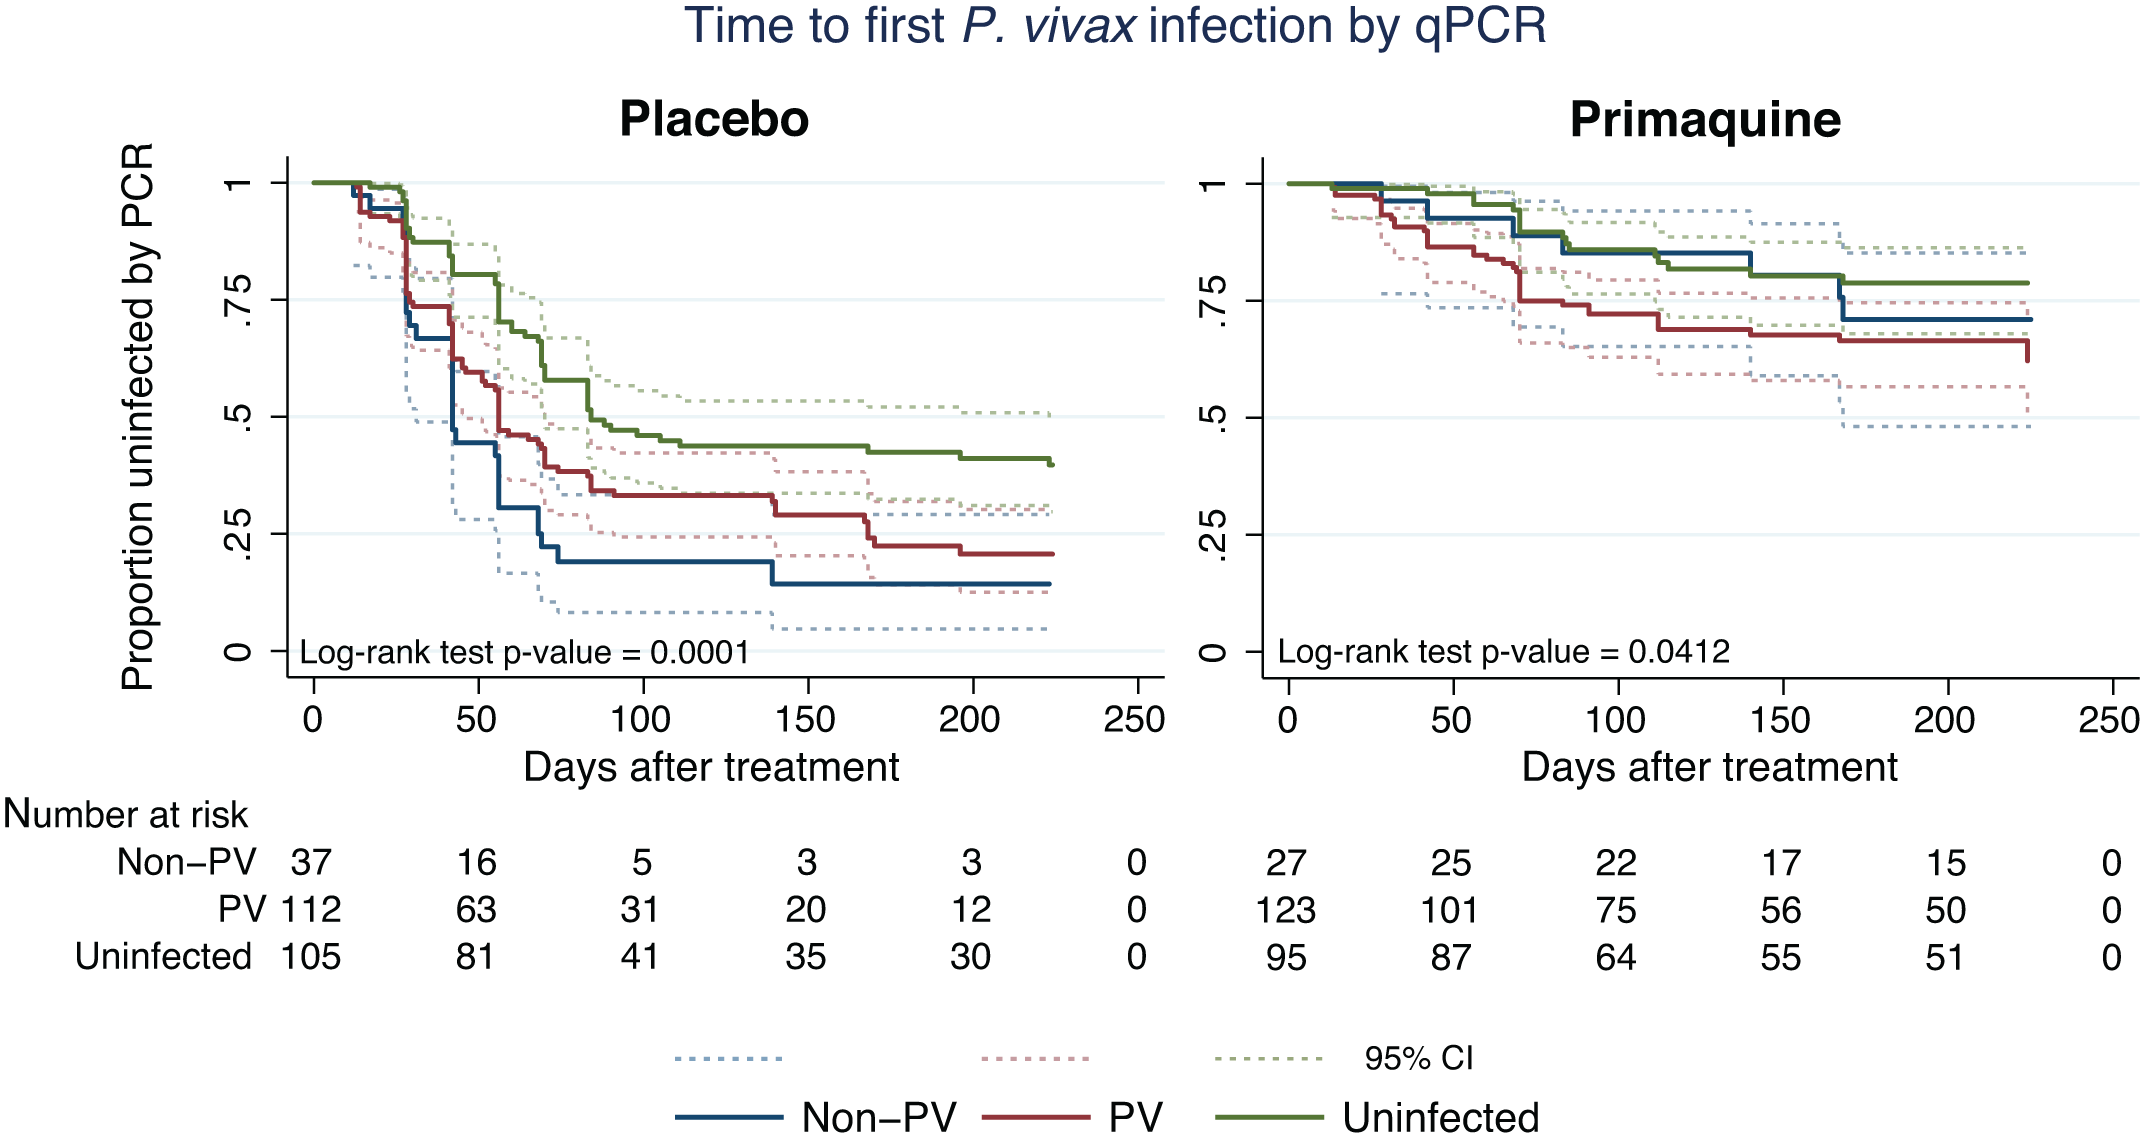 Kaplan-Meier plots showing the time to first (or only) <i>P</i>. <i>vivax</i> infection by qPCR in the PL and PQ arms, stratified by <i>Plasmodium</i> infection status at enrolment.